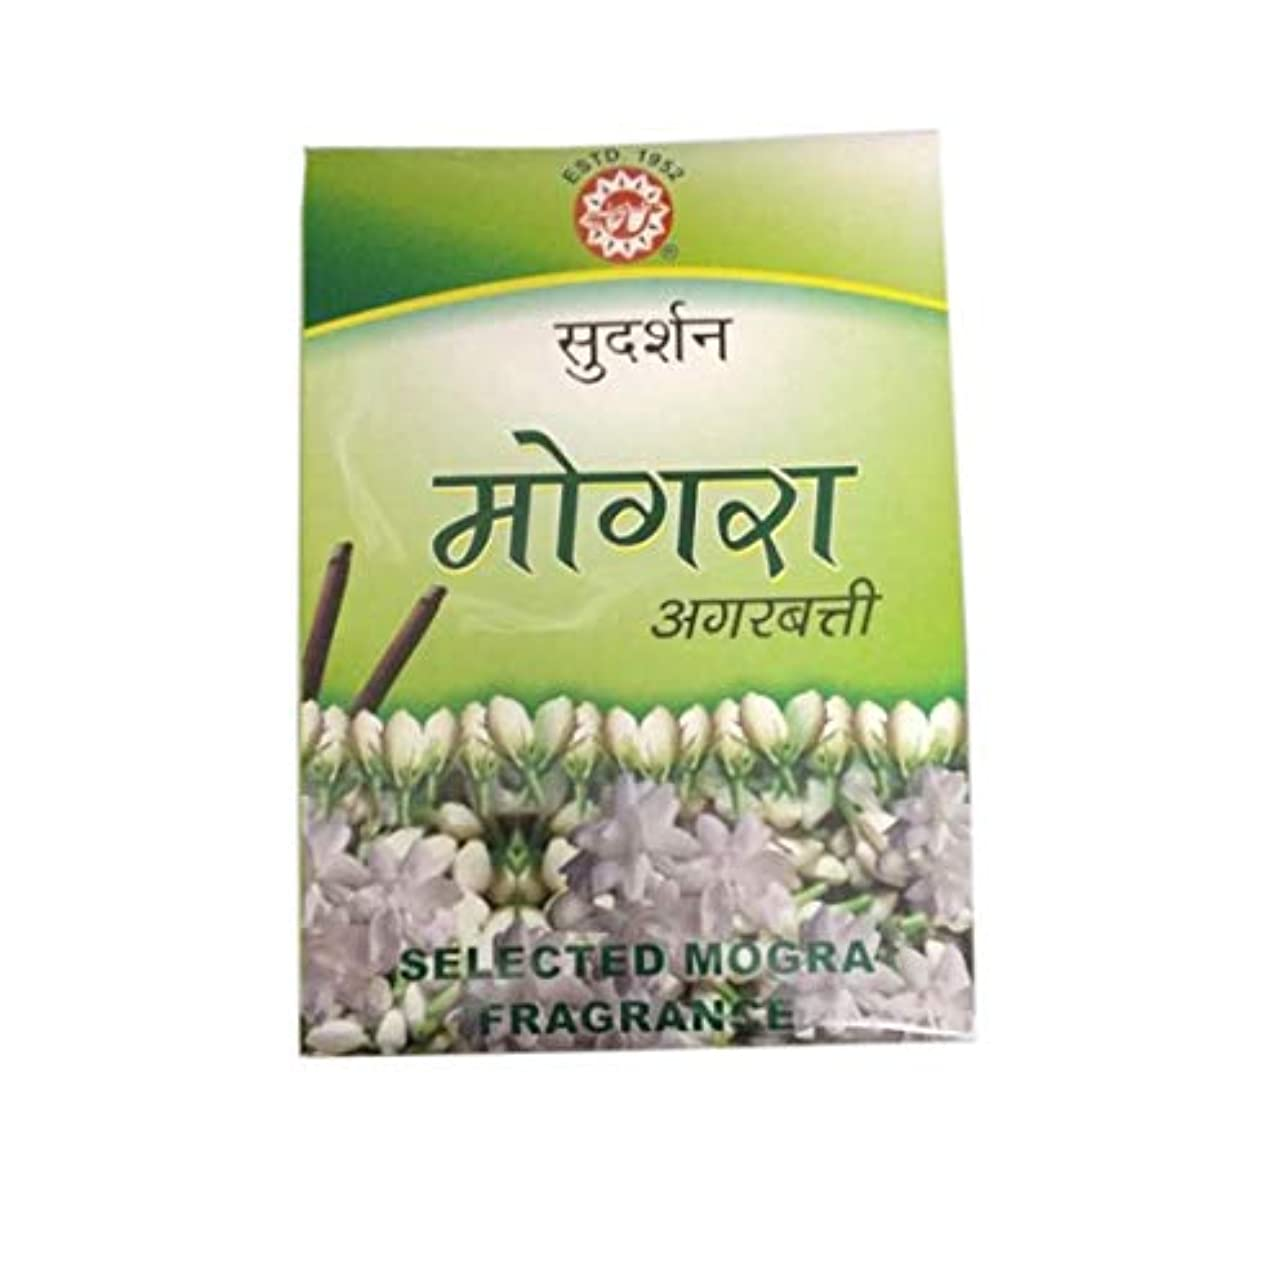 批判的レンド敵対的Sudarshan Mogra Agarbatti - 12 Sticks Packet 1 Box Fragrance Incense Sticks for Positivity & Freshness Lavender...